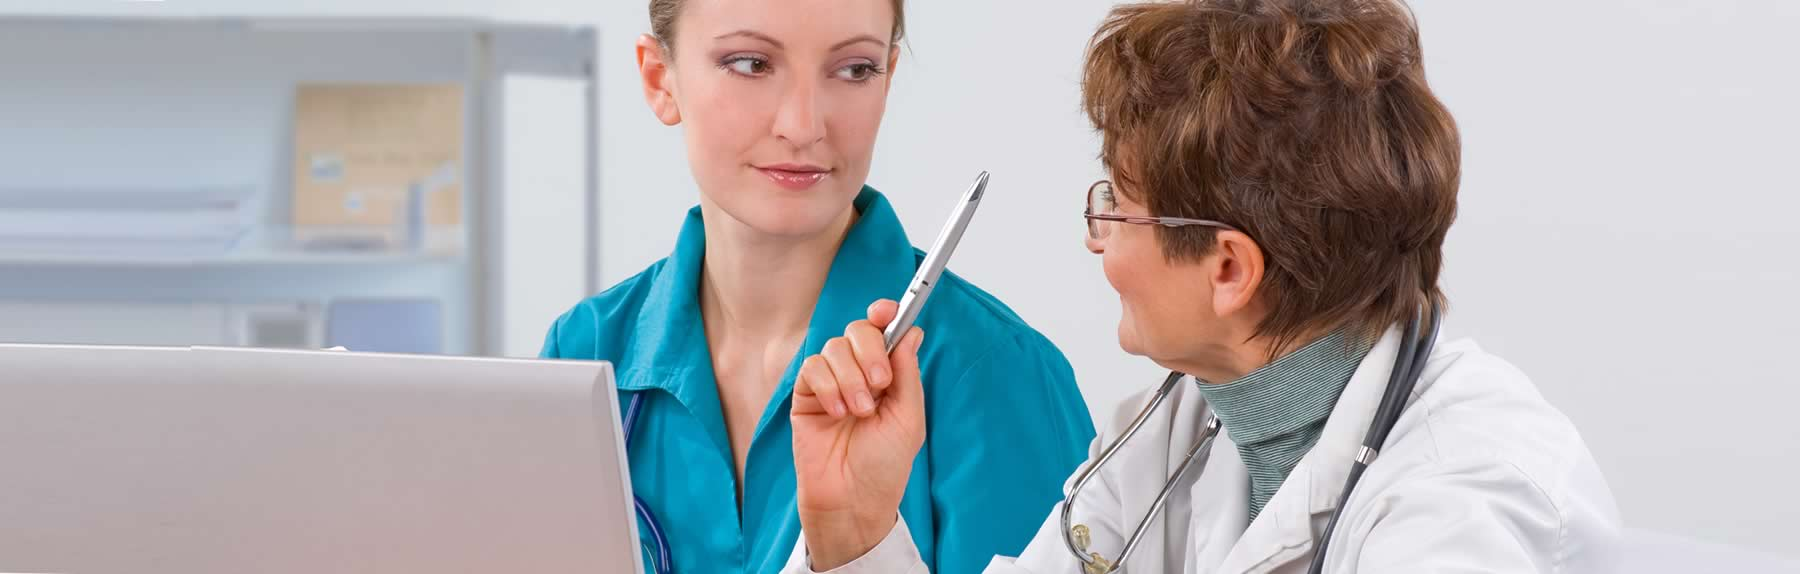 Addressing the Industry Need for Nursing Faculty